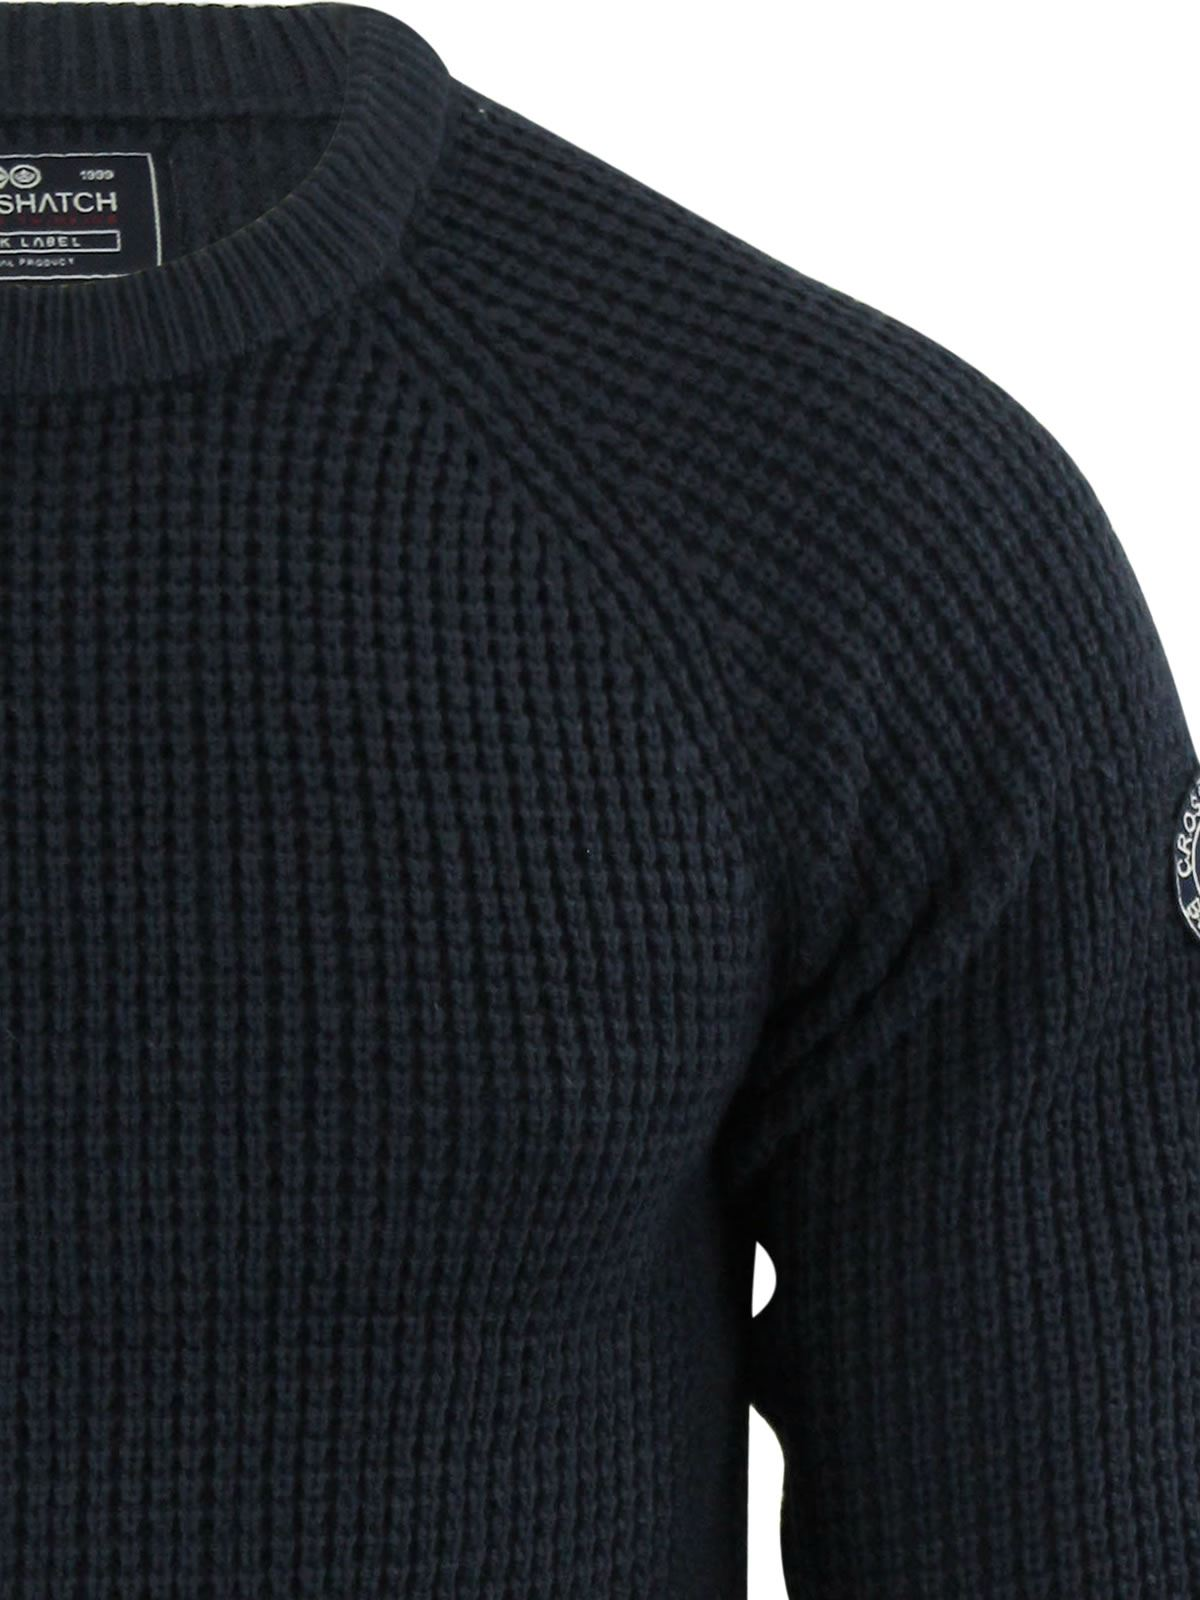 Mens-Jumper-Crosshatch-General-Waffle-Knitted-Crew-Neck-Wool-Mix-Sweater thumbnail 18